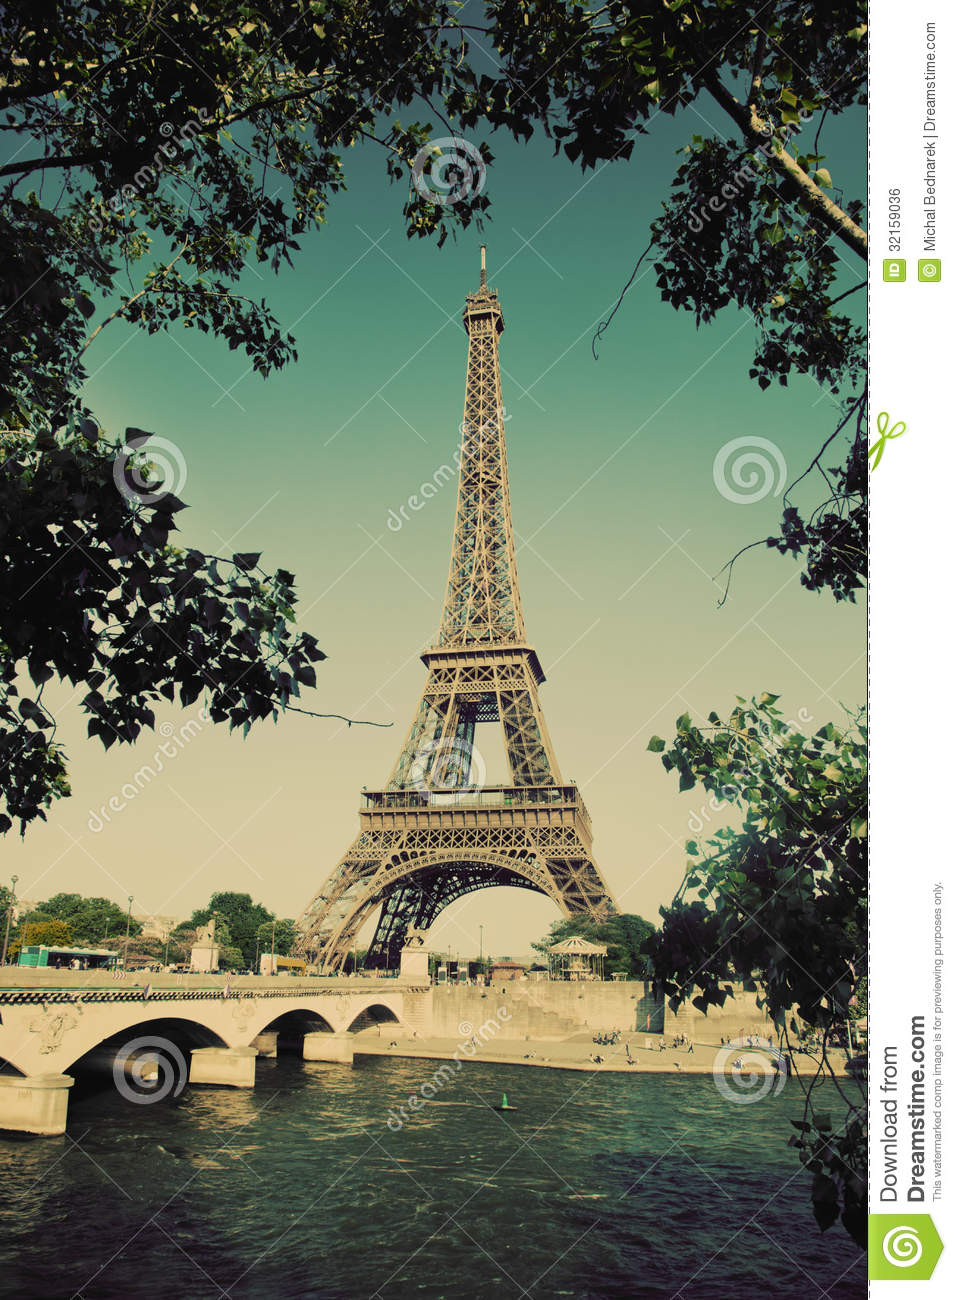 Eiffel Tower And Seine River In Paris France Vintage Stock Photo Image Of Seine Beautiful